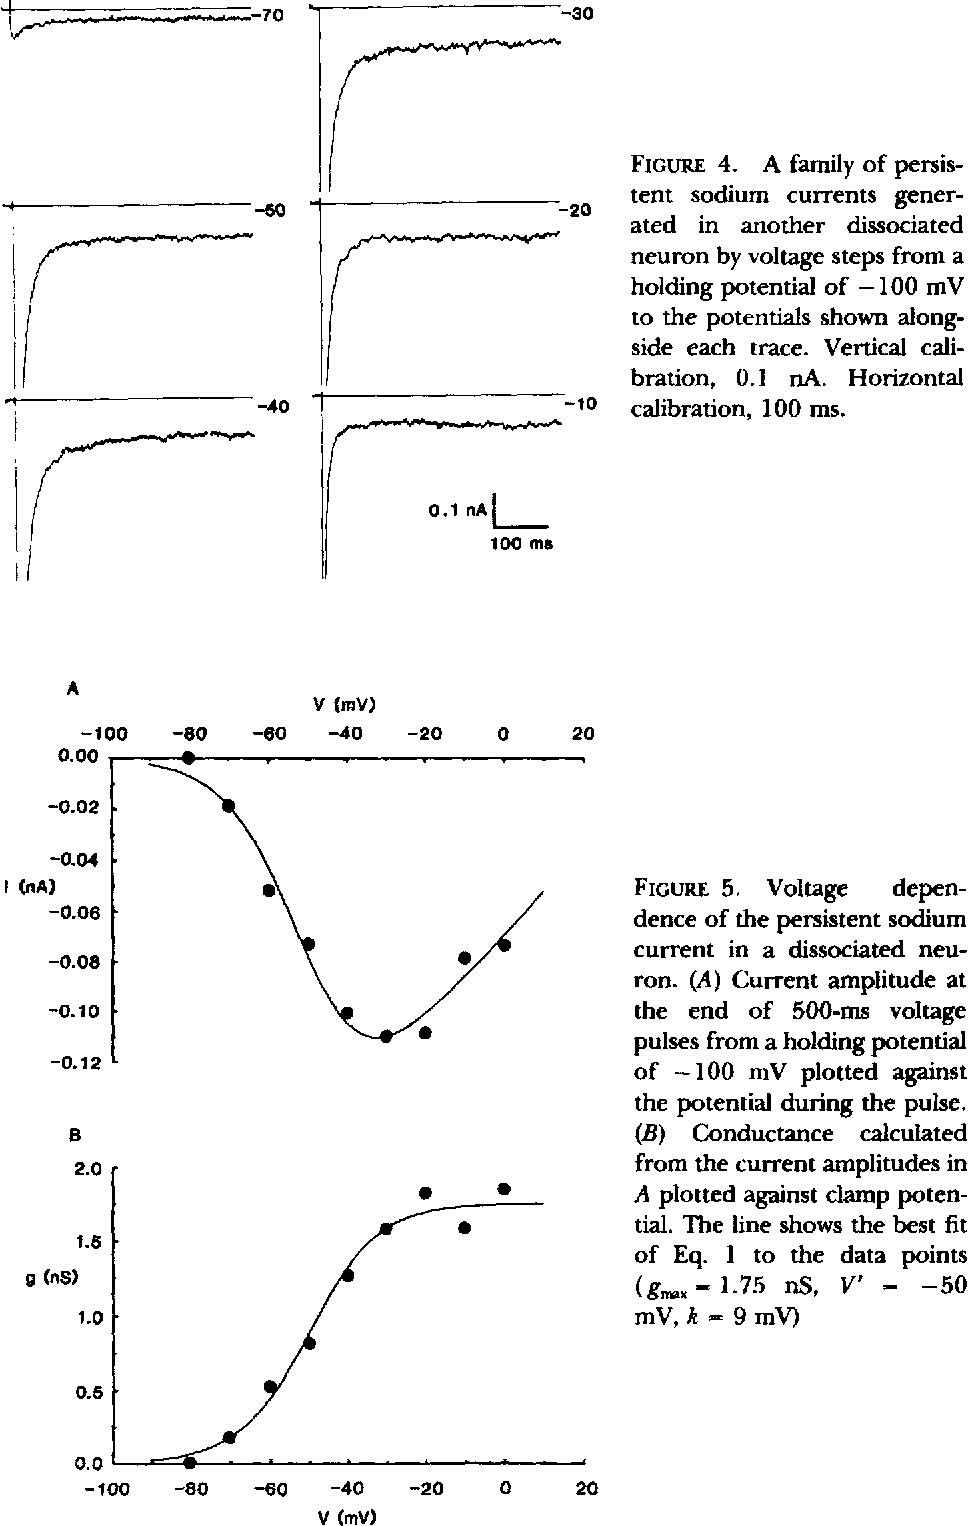 FIGURE 5. Voltage dependence of the persistent sodium current in a dissociated neuron. (A) Current amplitude at the end of 500-ms voltage pulses from a holding potential of - 1 0 0 mV plotted against the potential during the pulse. (B) Conductance calculated from the current amplitudes in A plotted against clamp potential. The line shows the best fit o f Eq. 1 to the data points (gm~-- 1.75 nS, V' - - 5 0 mV, k = 9 mV)